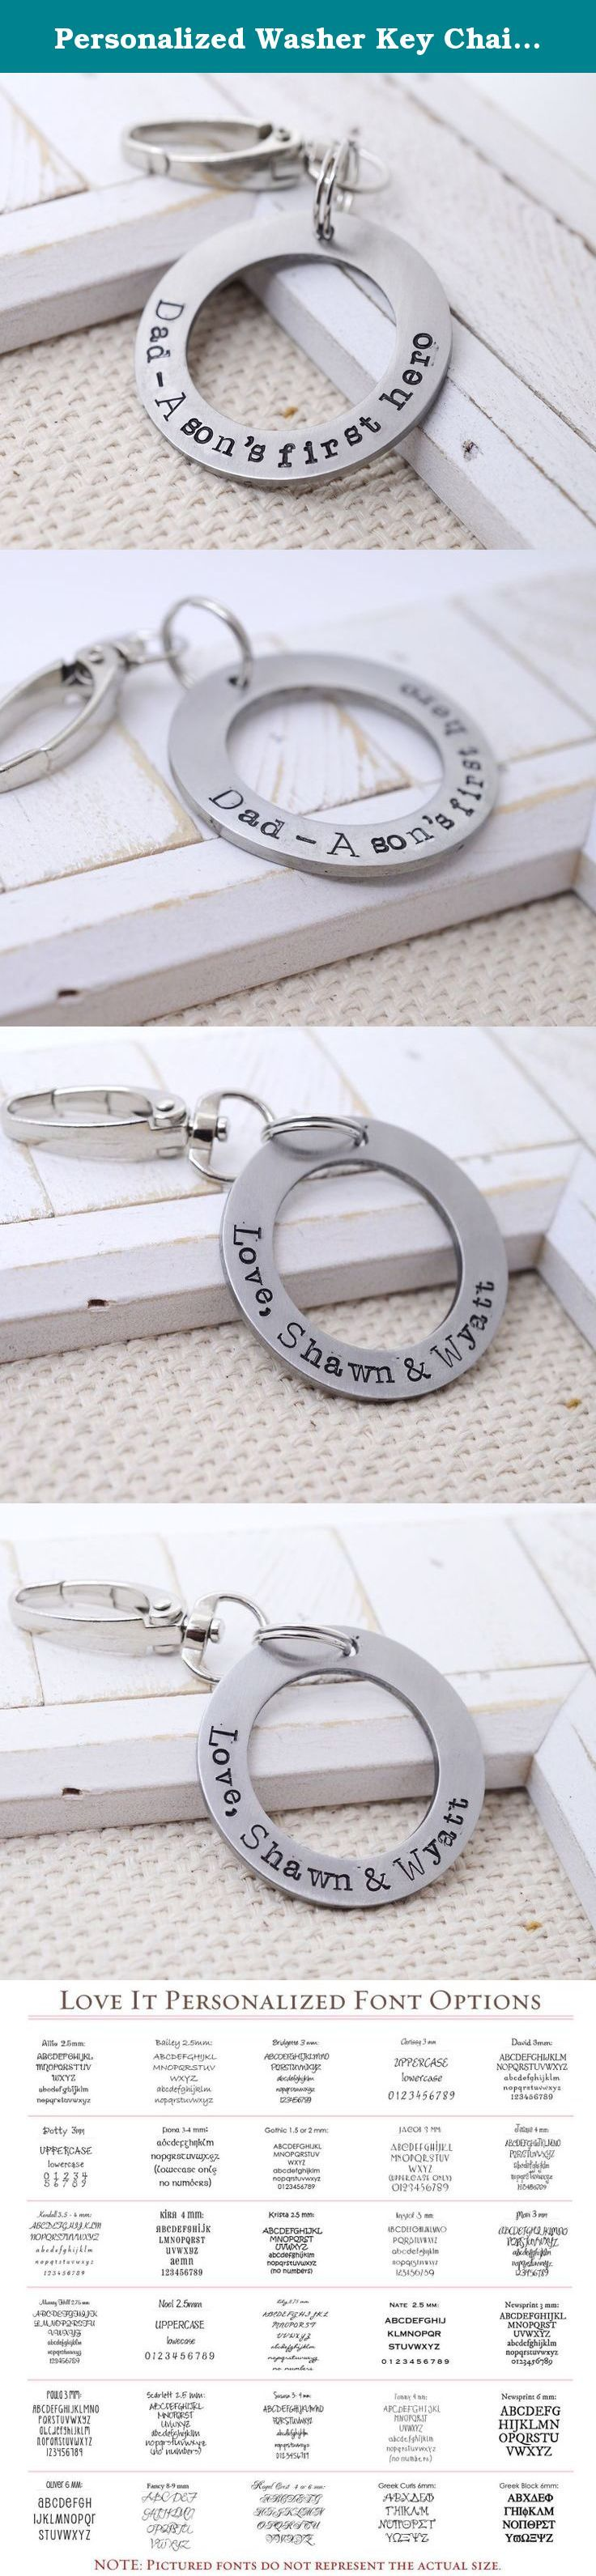 Personalized Washer Key Chain - Double Sided Custom Message - Gift for Dad - Father's Day Gift. A simple and beautiful round cut out key chain. This makes a great gift to fathers from their kids on Valentine's Day, Father's Day, anniversaries or a birthday. The disc is made from a thick aluminum disc that allows it to be stamped with personalized text on both sides. Key chain can be stamped with a short phrase or quote, names or dates or anything special you want to tell your loved one…